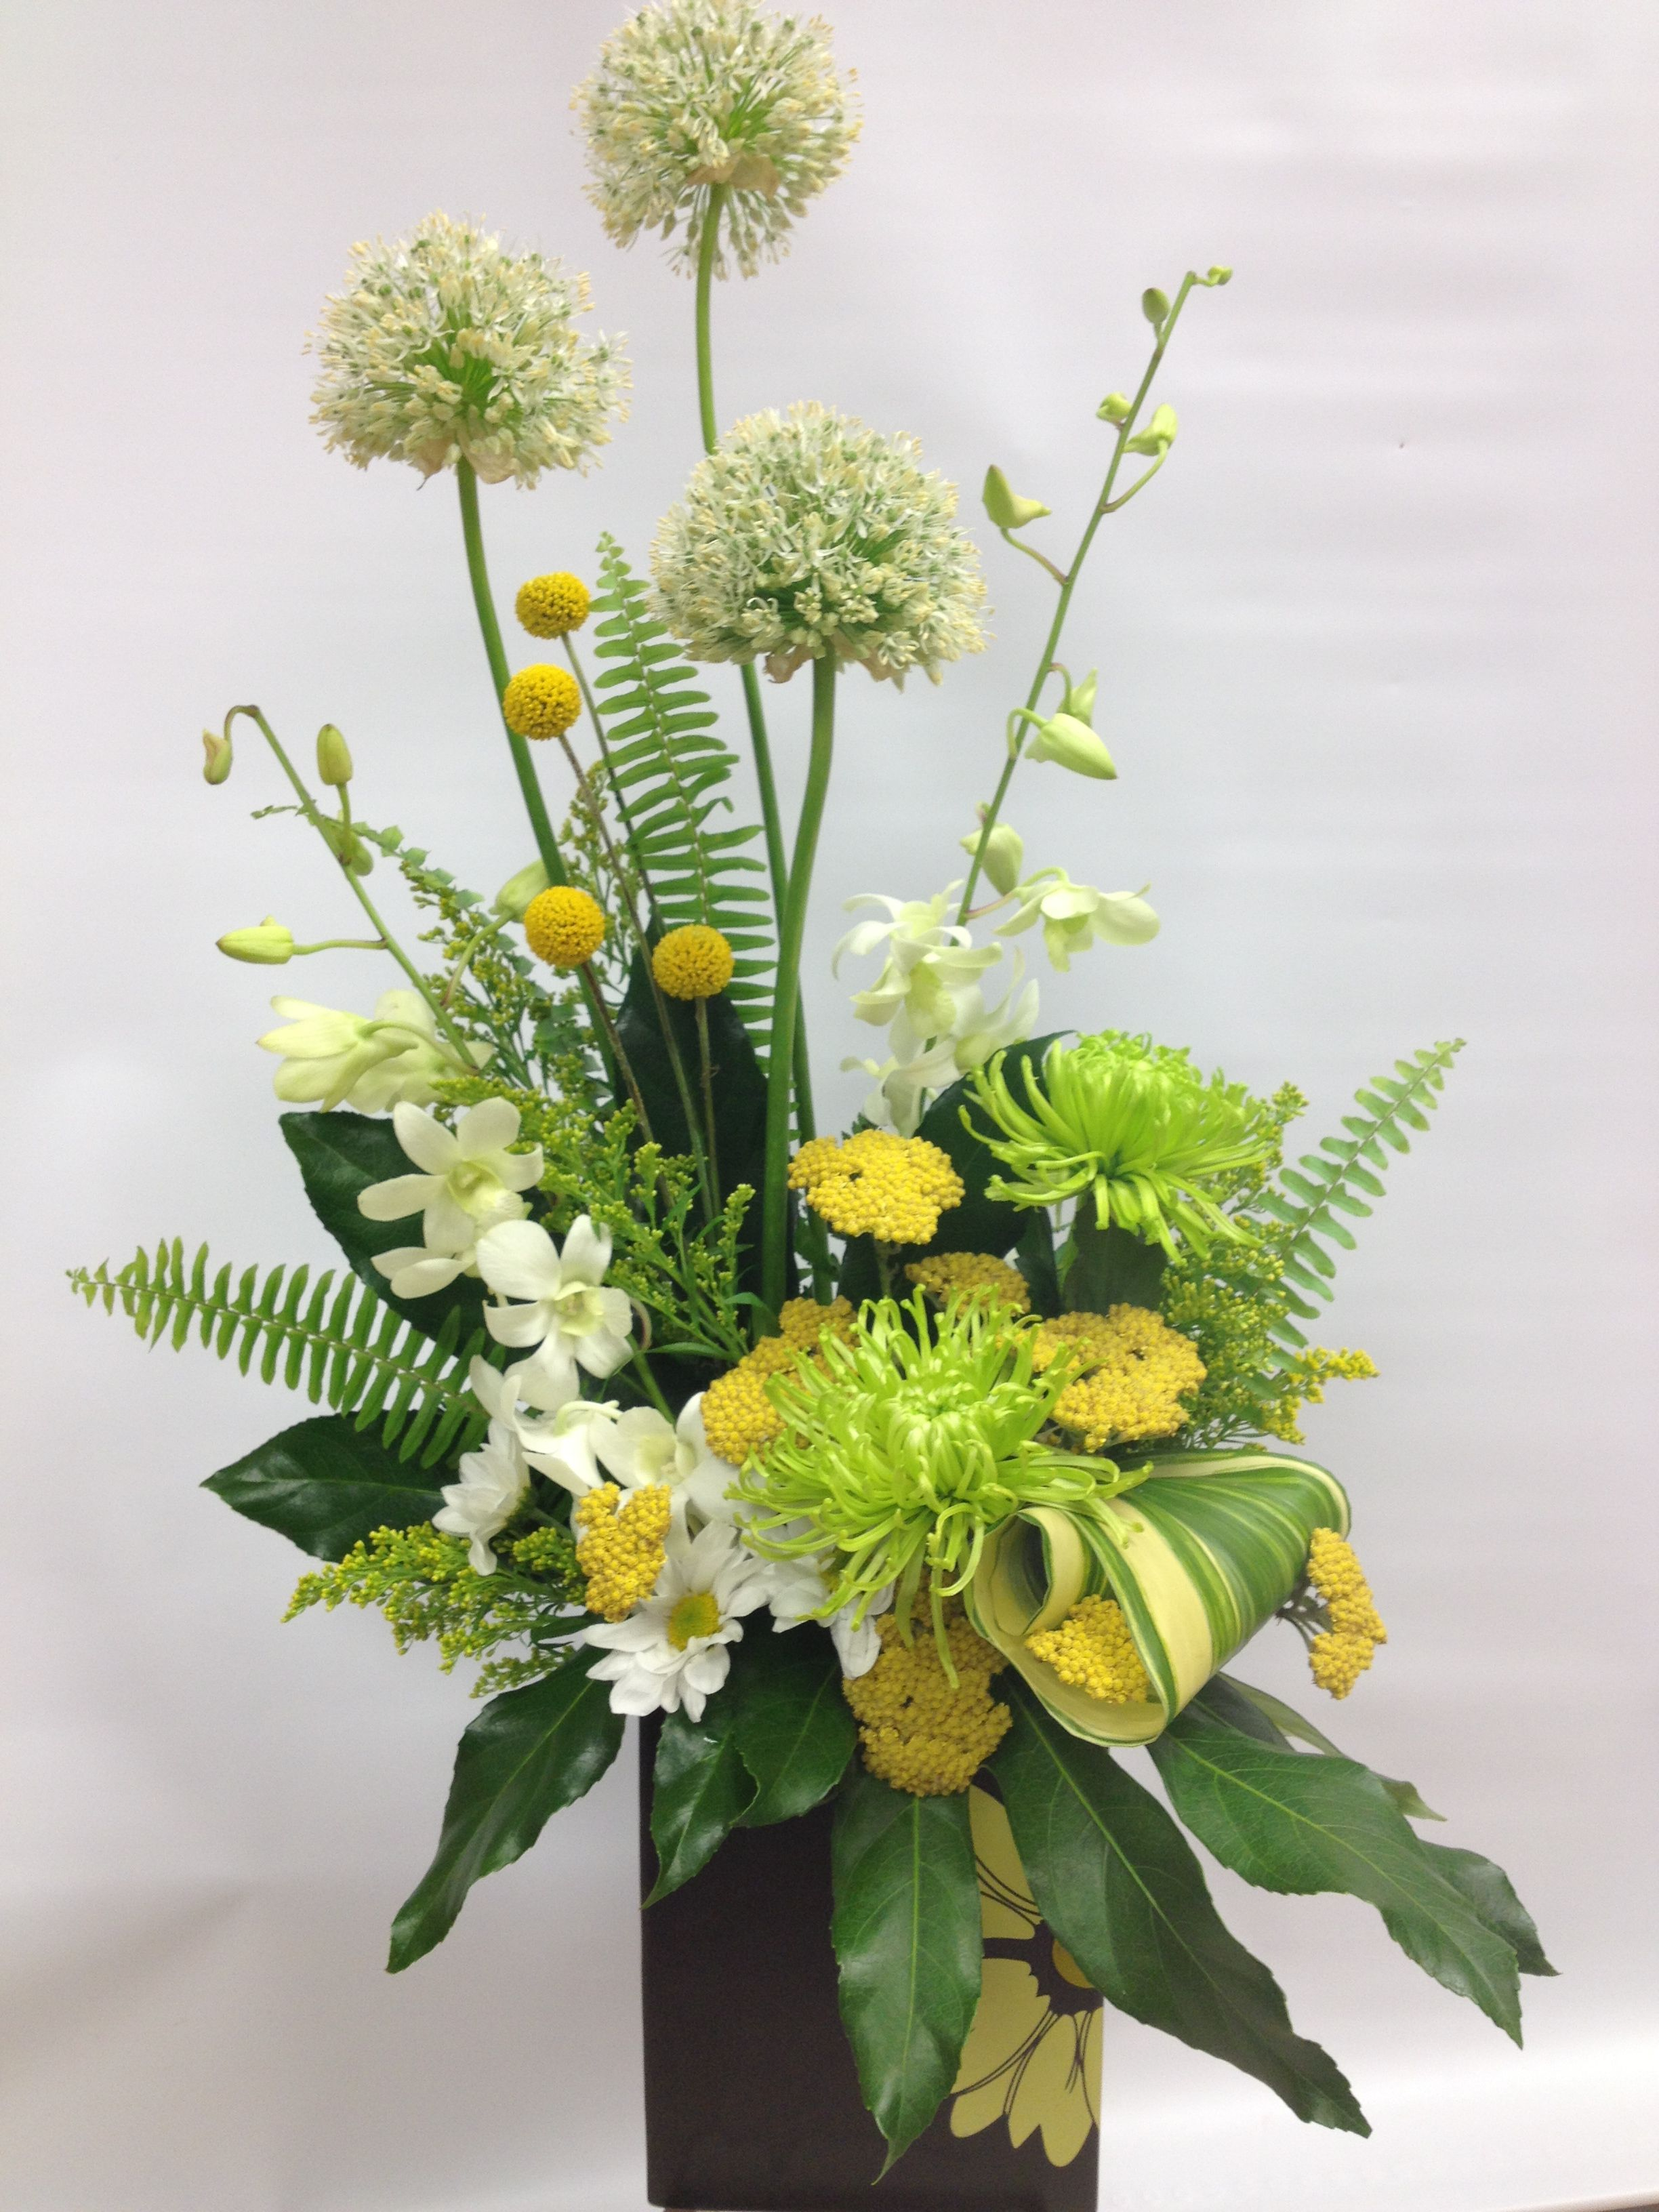 A beautiful asymmetrical arrangement in green white and